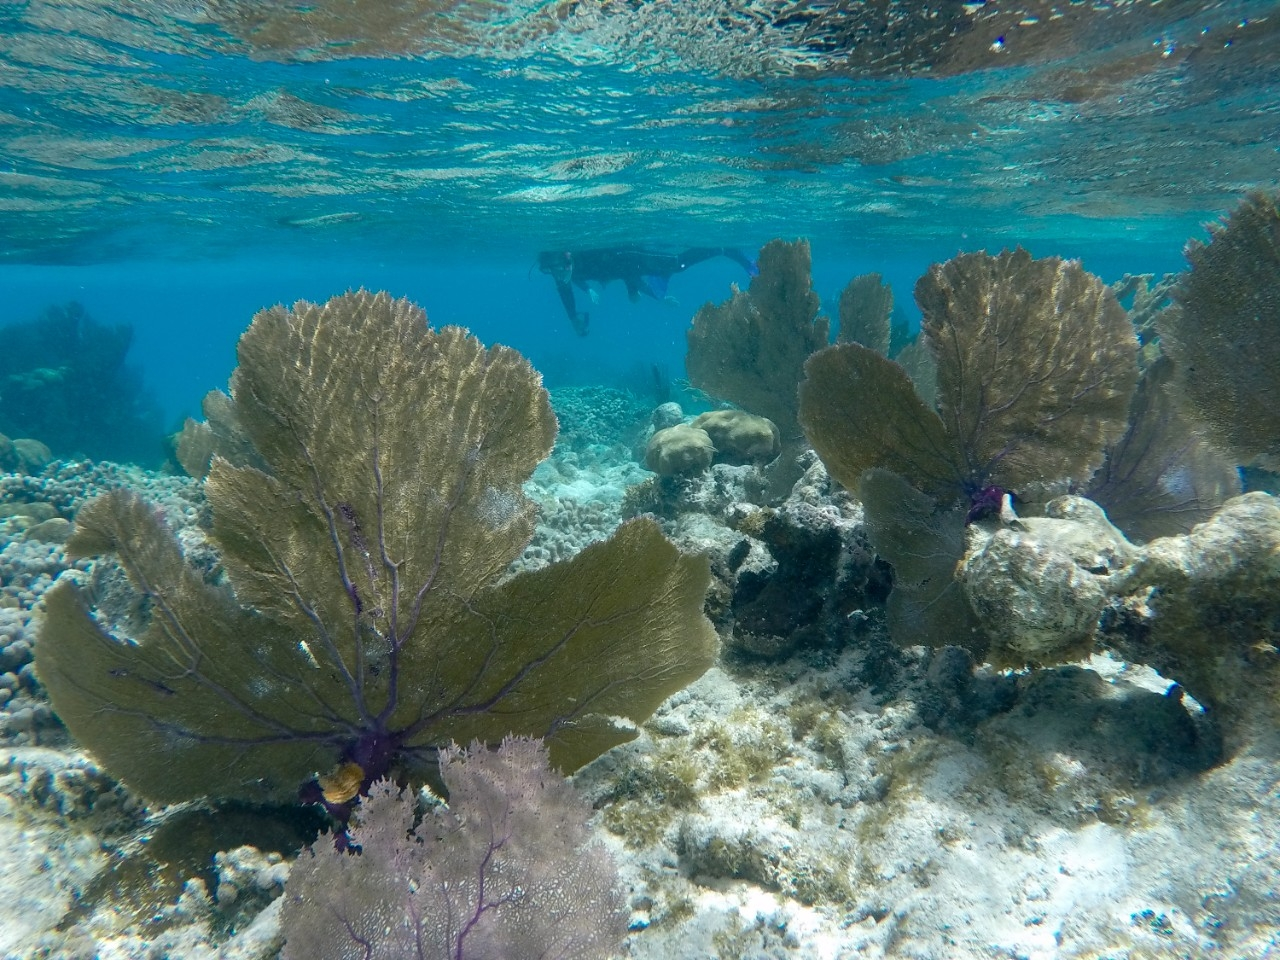 Coral Reefs Research in Belize